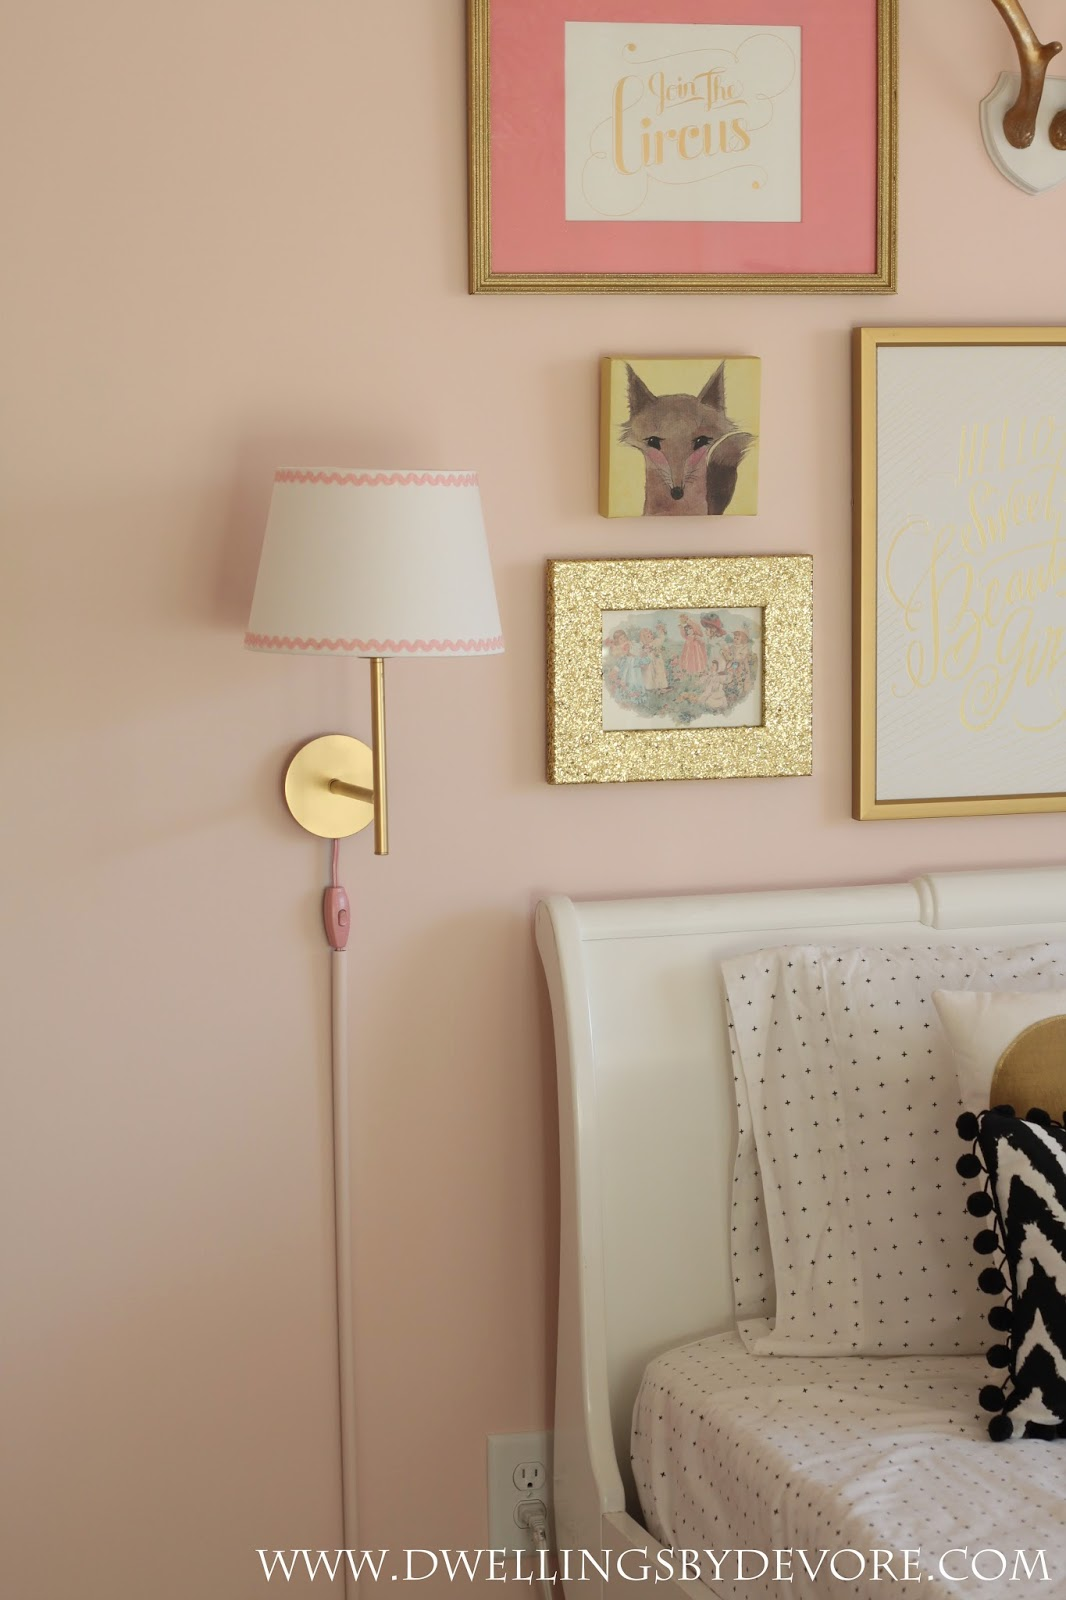 dwellings by devore ikea rodd wall sconce hack. Black Bedroom Furniture Sets. Home Design Ideas